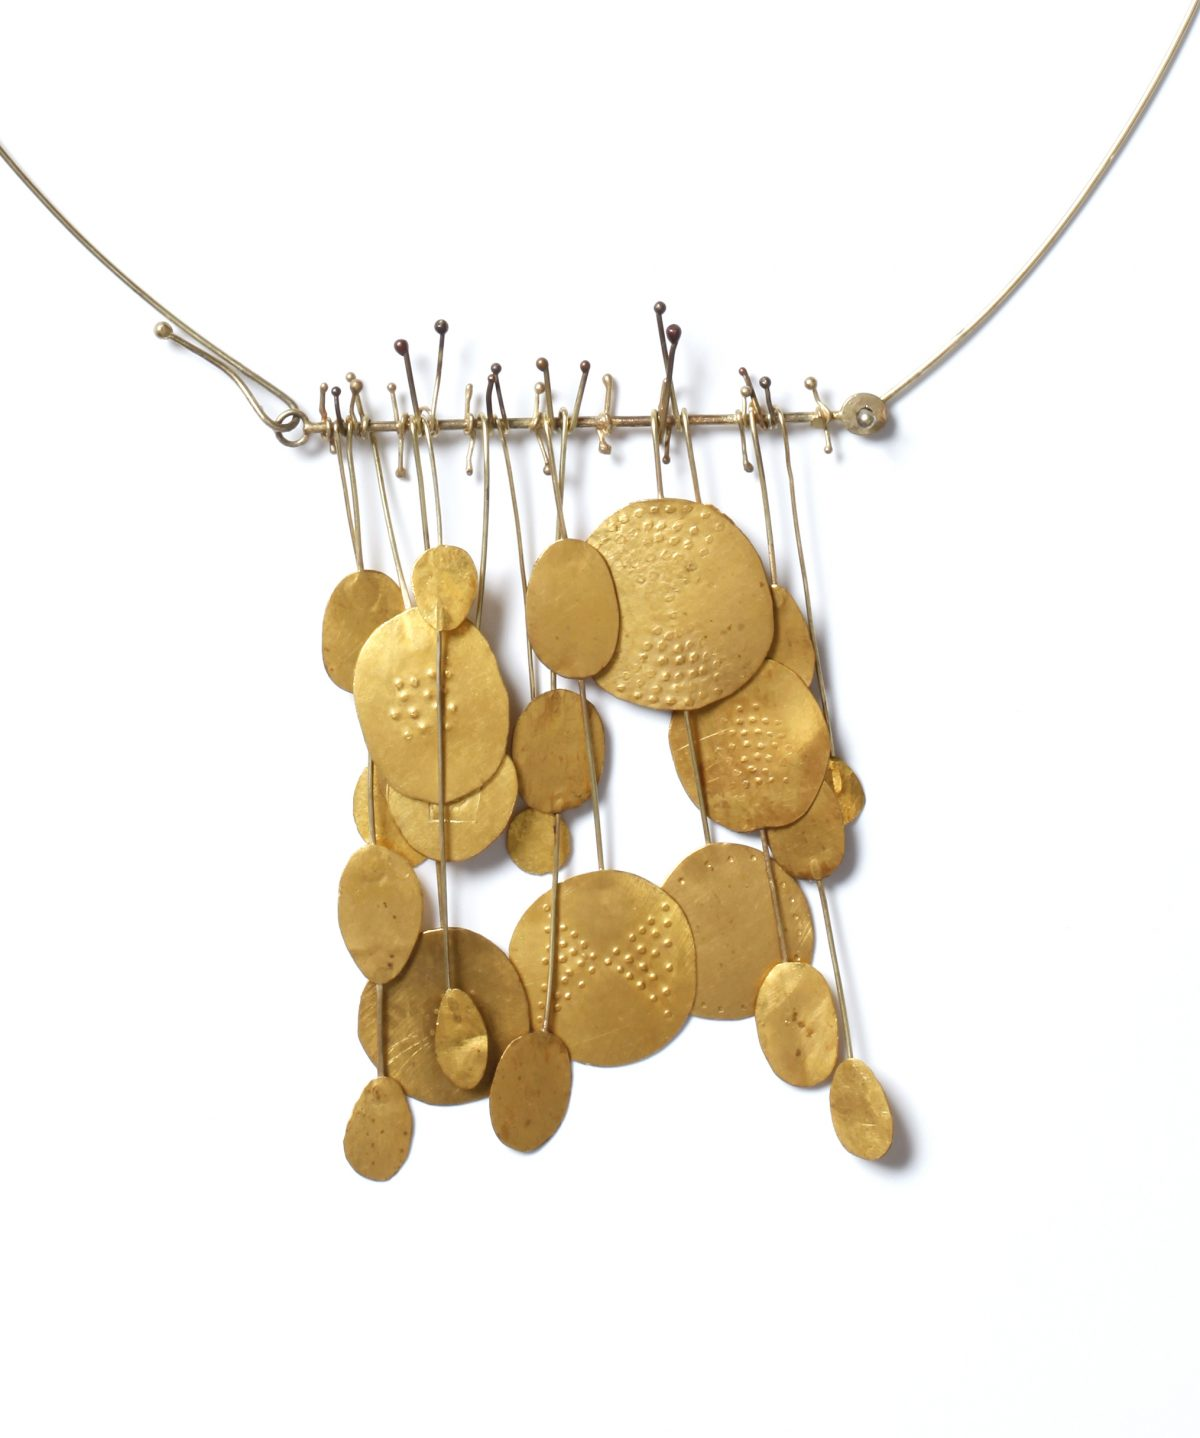 Hermann Jünger, necklace, 1957, gold, pendant: h. 8,8 cm, w. 5,5 cm, Die Neue Sammlung – Permanent loan from Danner Foundation, Munich, Photo: Die Neue Sammlung (Alexander Laurenzo)